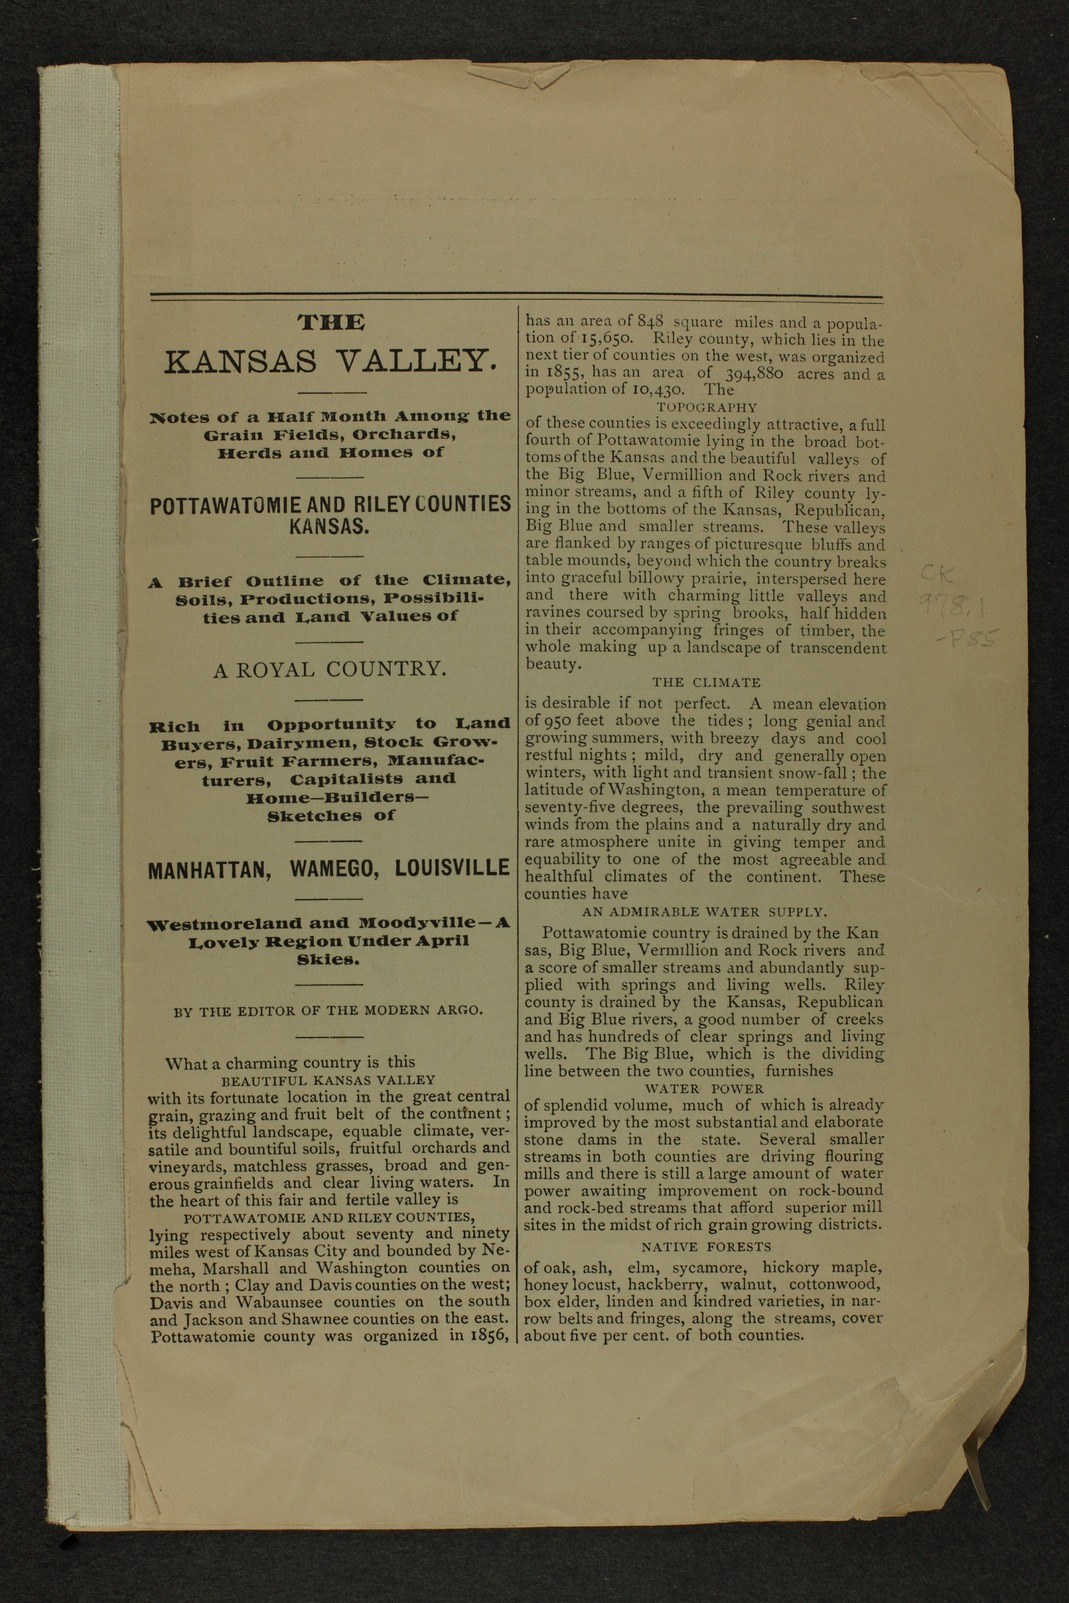 Handbook of Pottawatomie and Riley Counties, Kansas - page 1